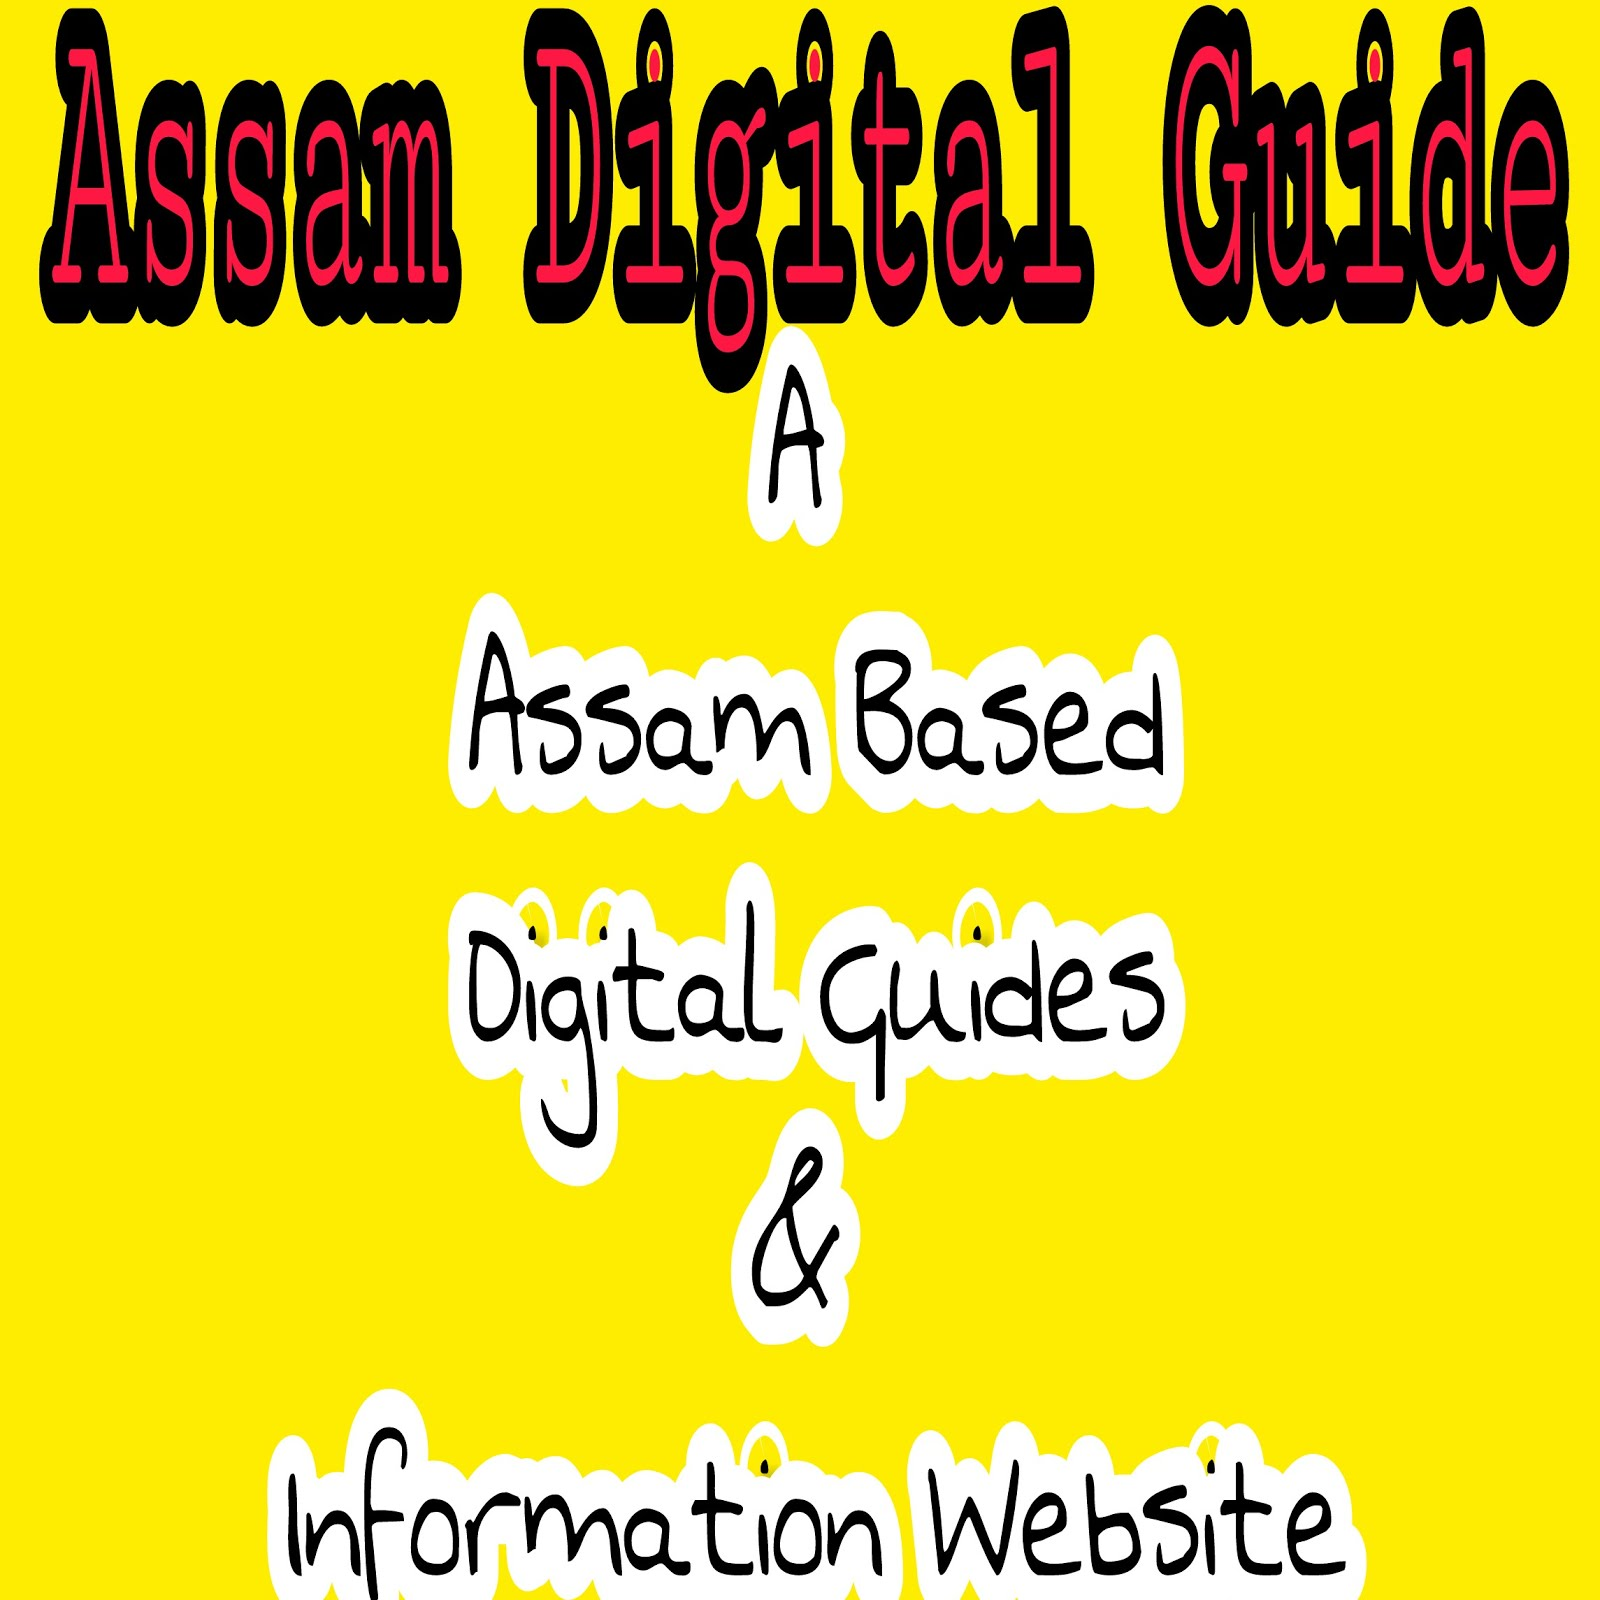 assam digital guide